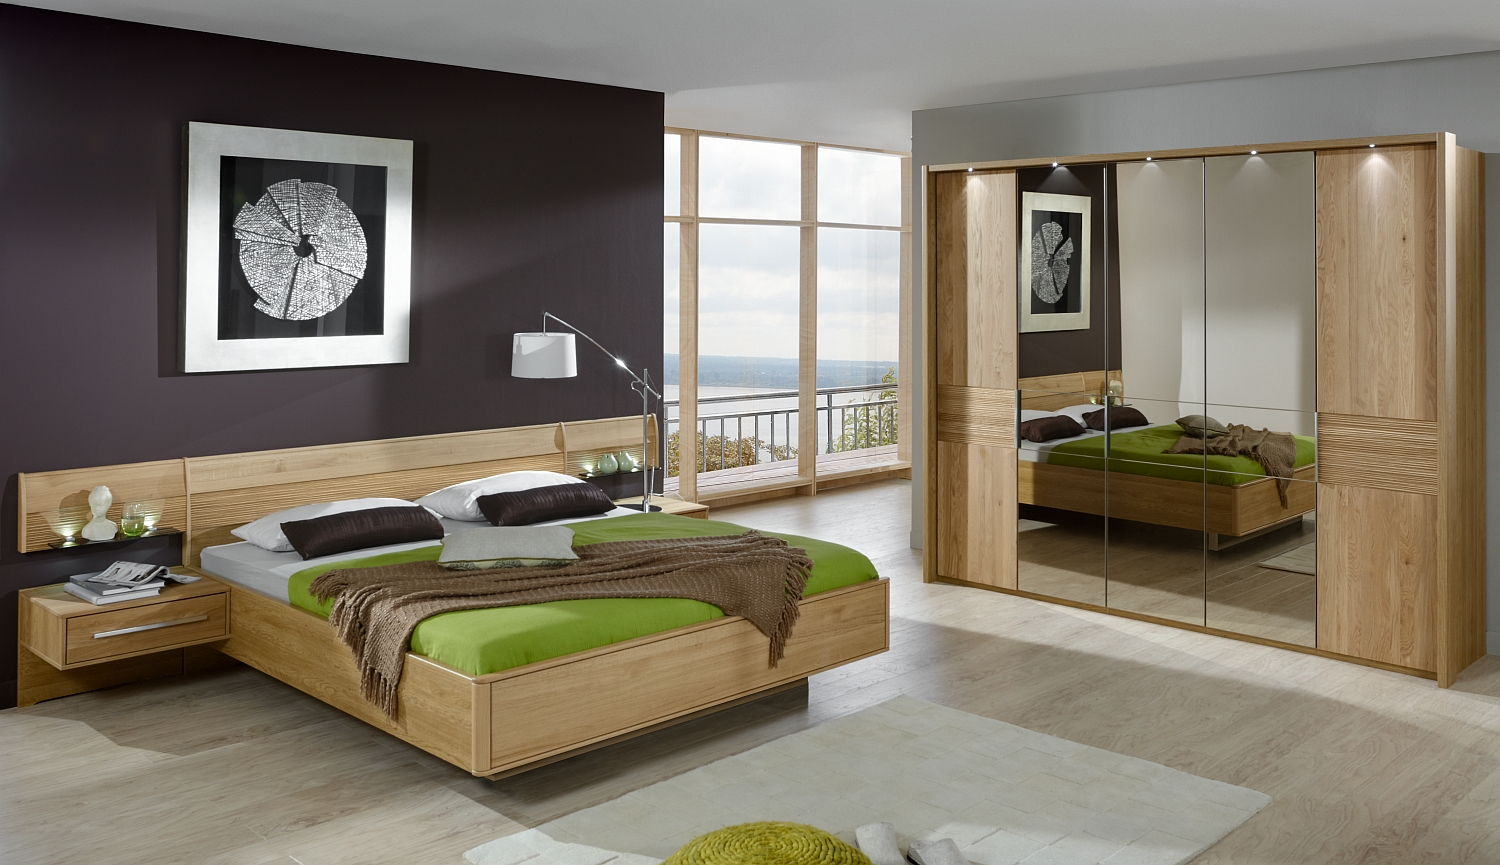 schlafzimmer m bel kraft neuesten design kollektionen f r die familien. Black Bedroom Furniture Sets. Home Design Ideas